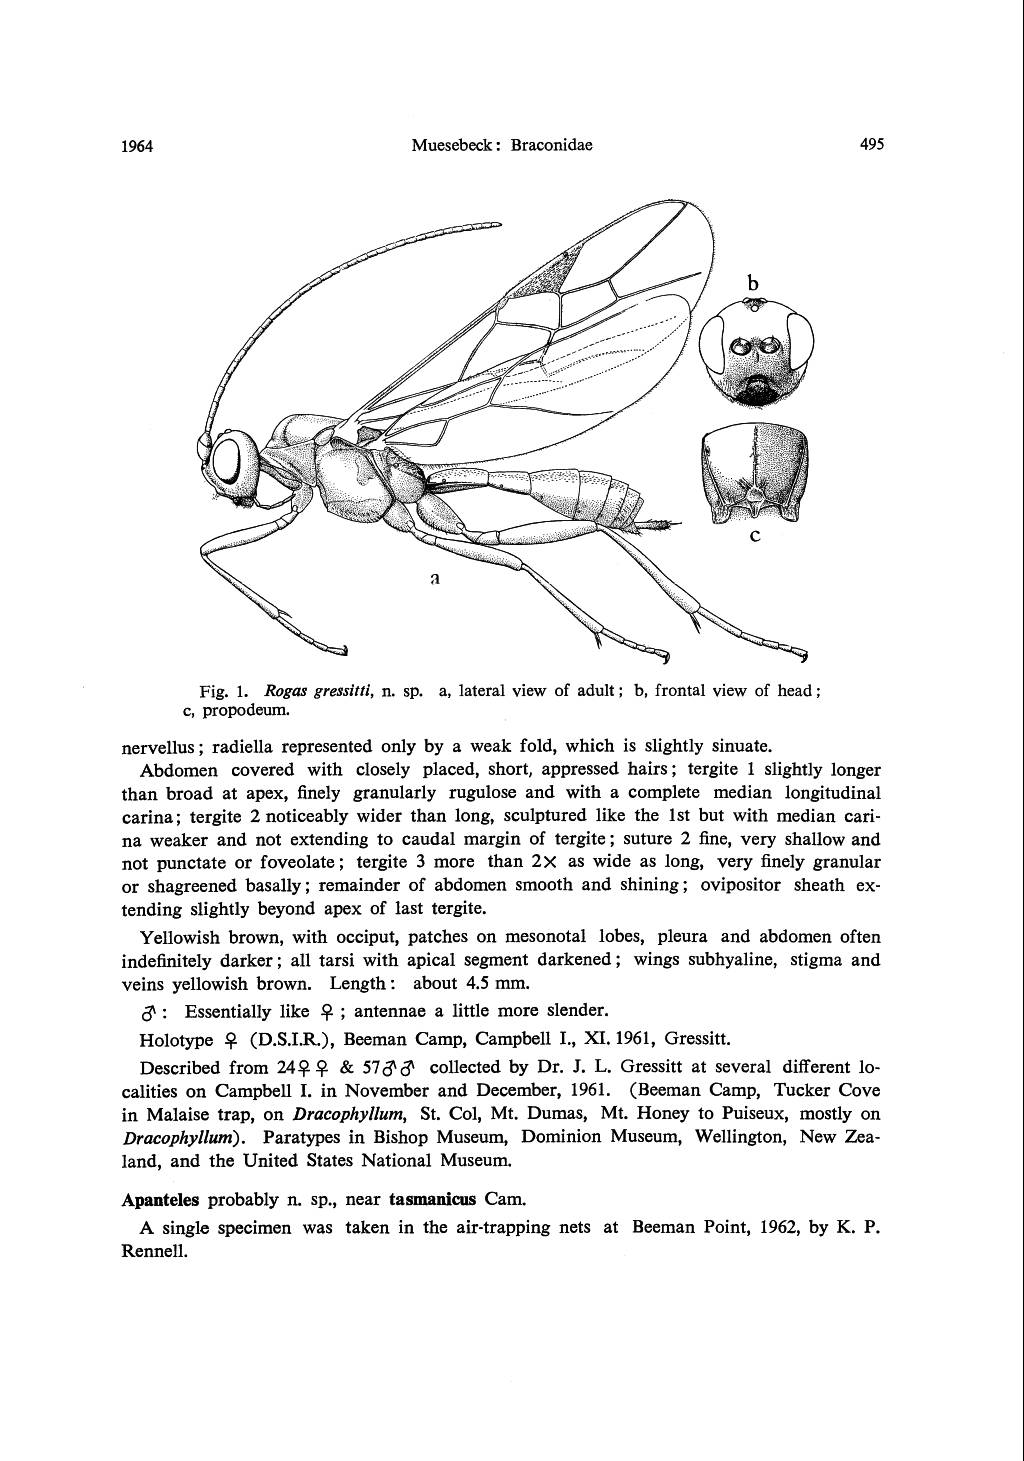 BUGZ: Muesebeck,C F W  1964: Insects of Campbell Island